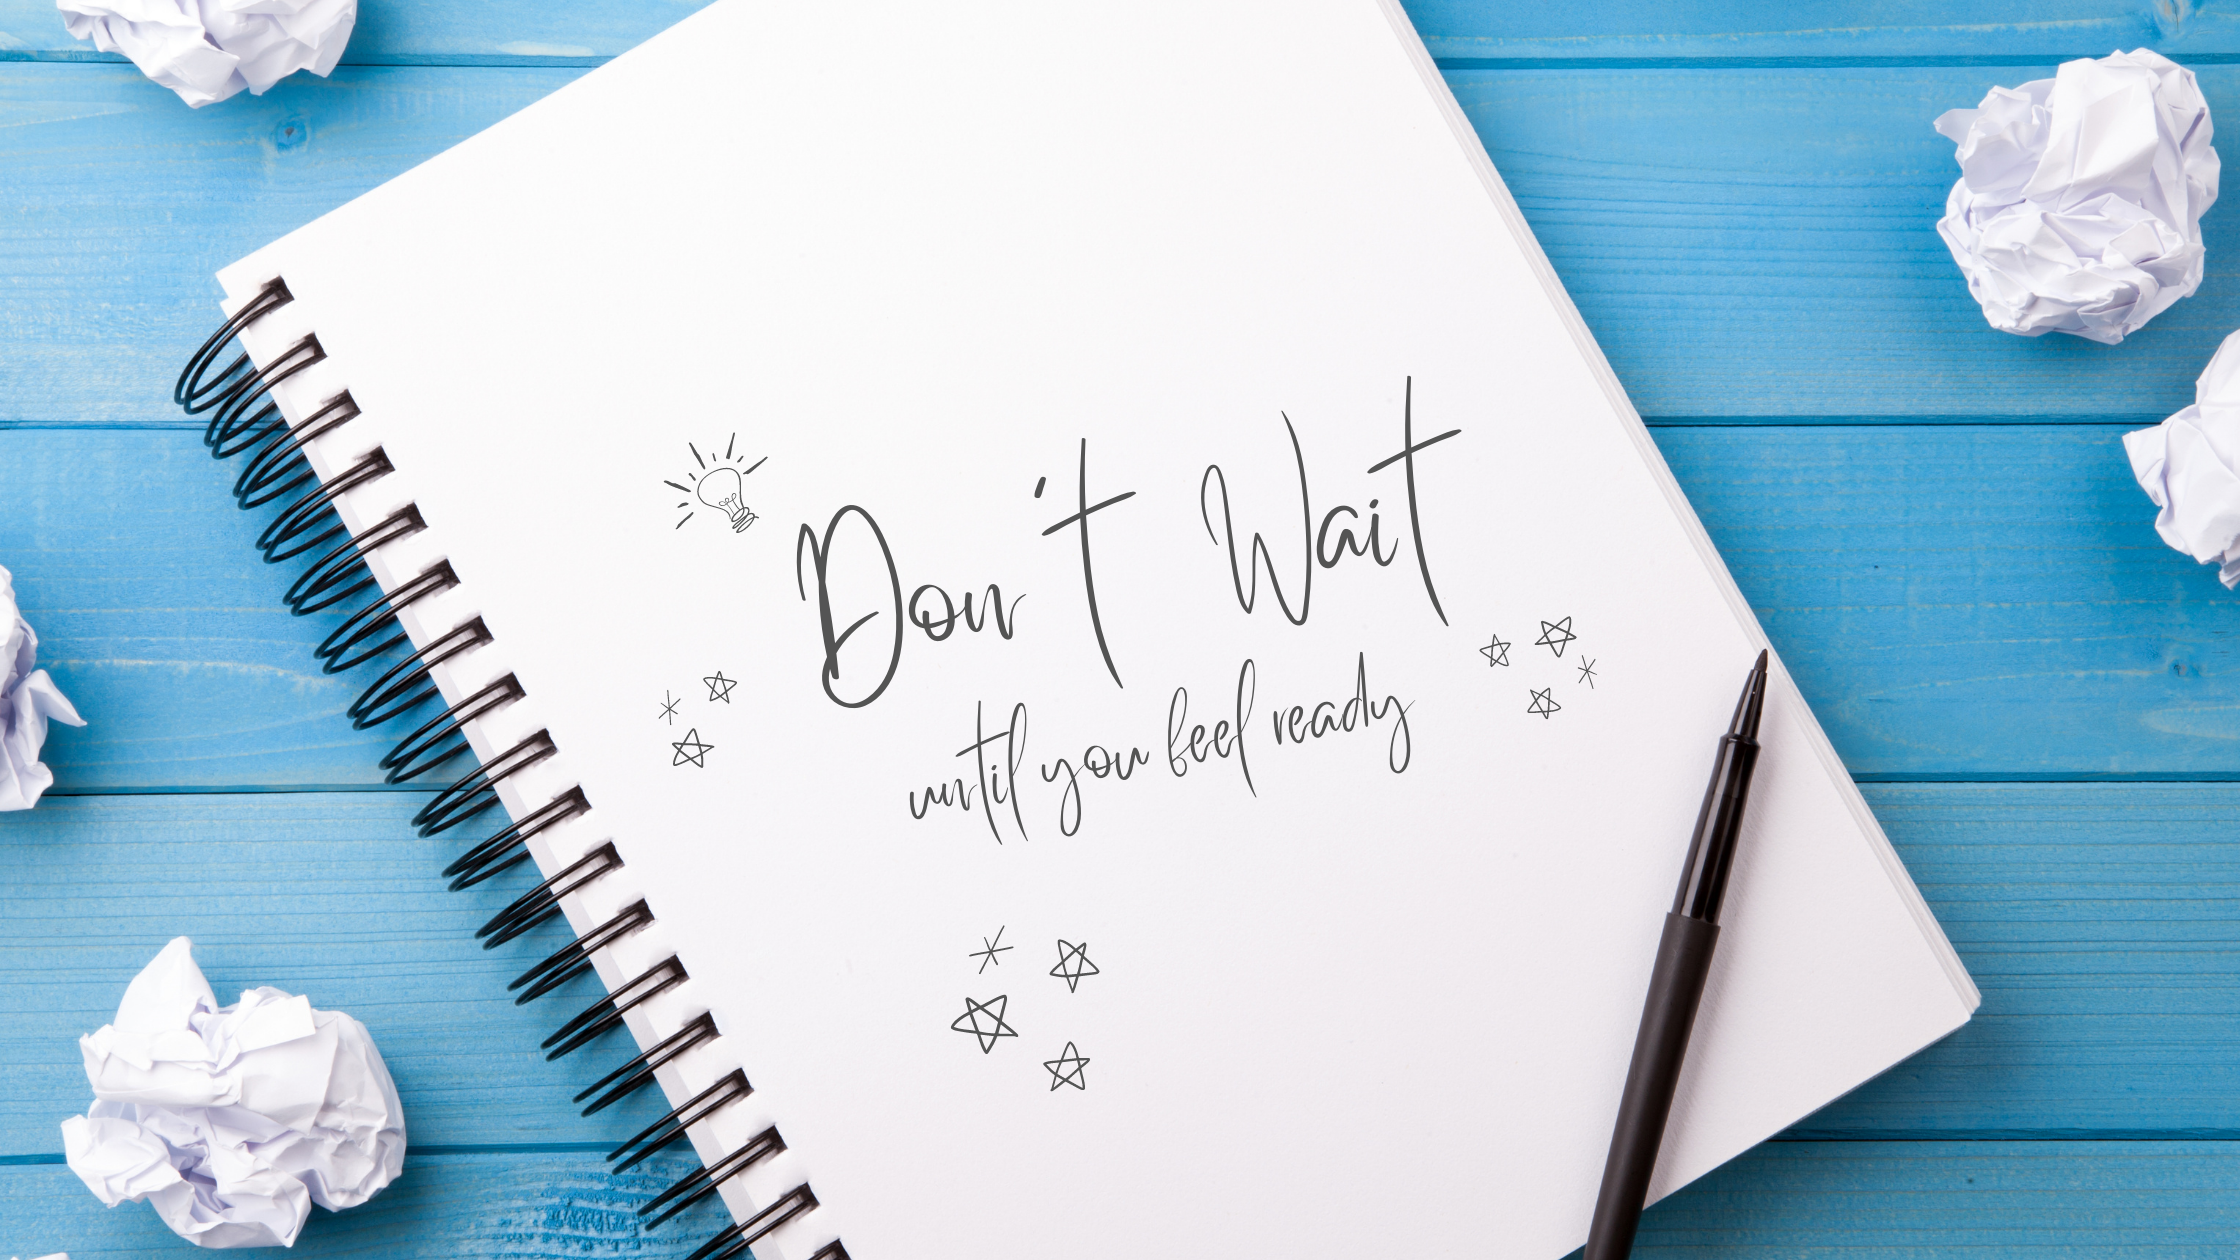 don't wait until you feel ready